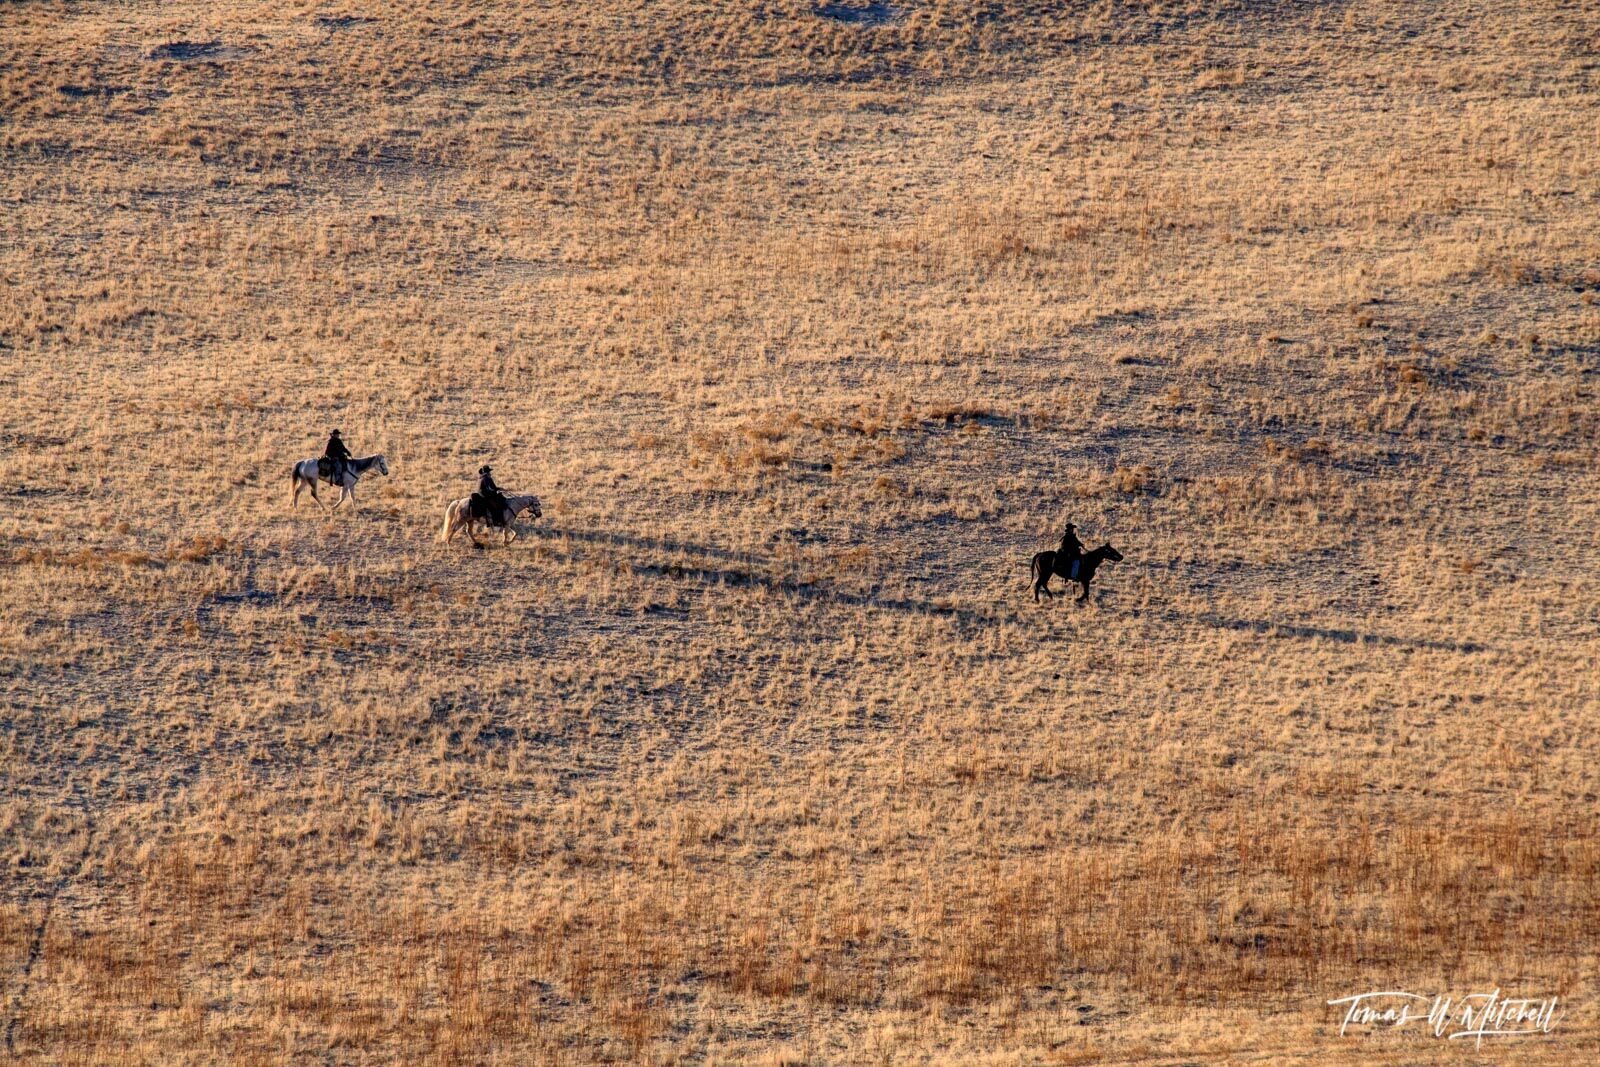 limited edition, fine art prints, antelope island state park, utah, white rock loop trail, home on the range, photograph, evening light, shadows, horse riders, photo